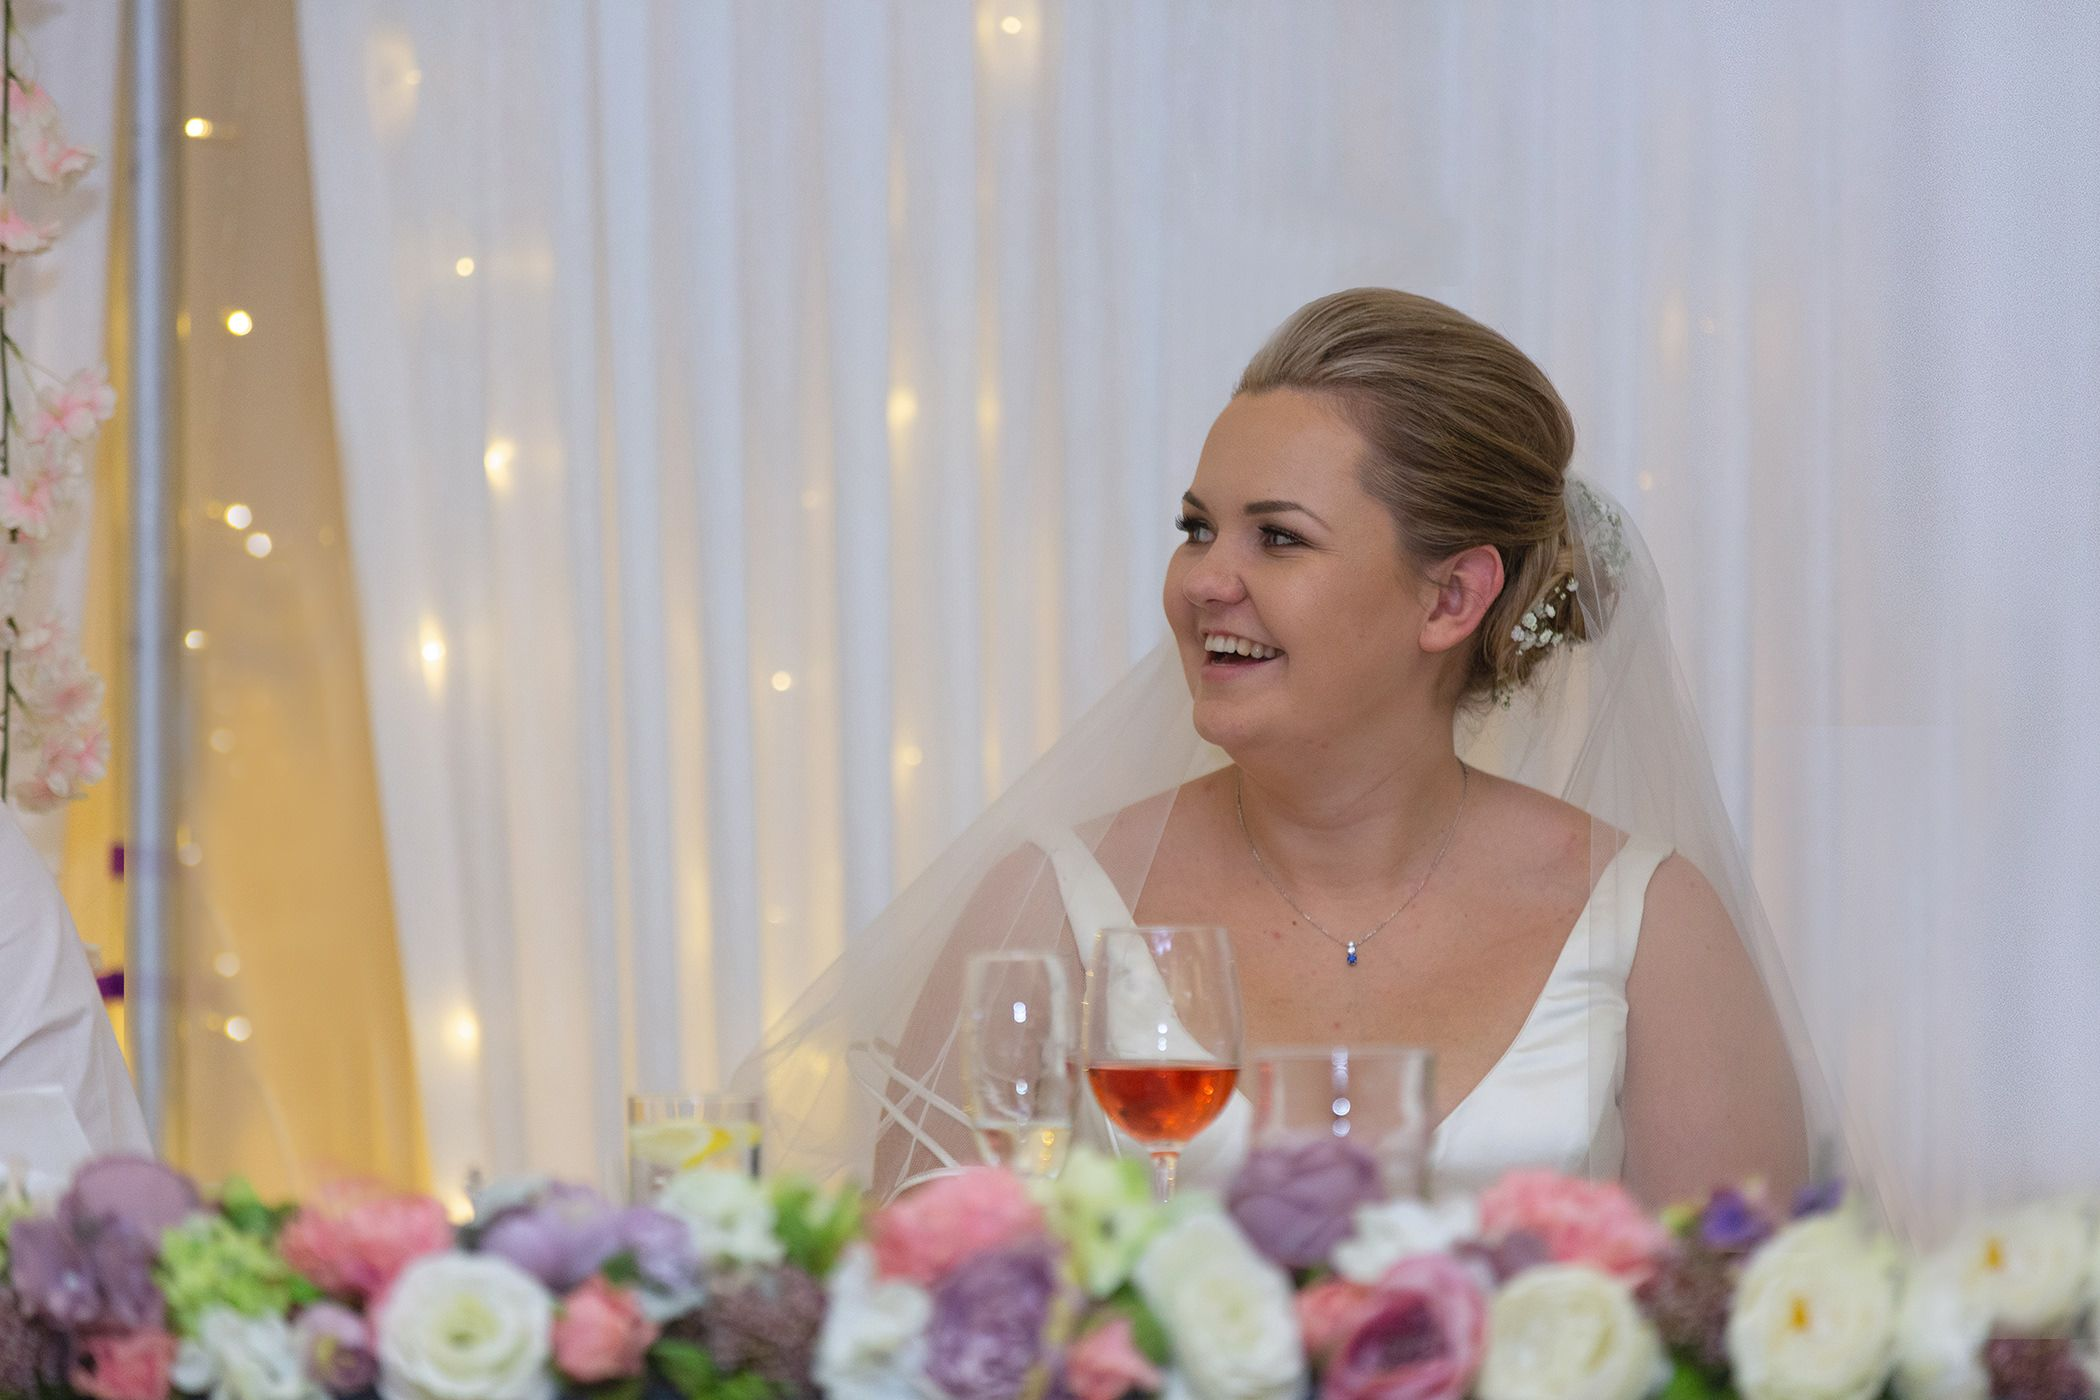 the bride having fun